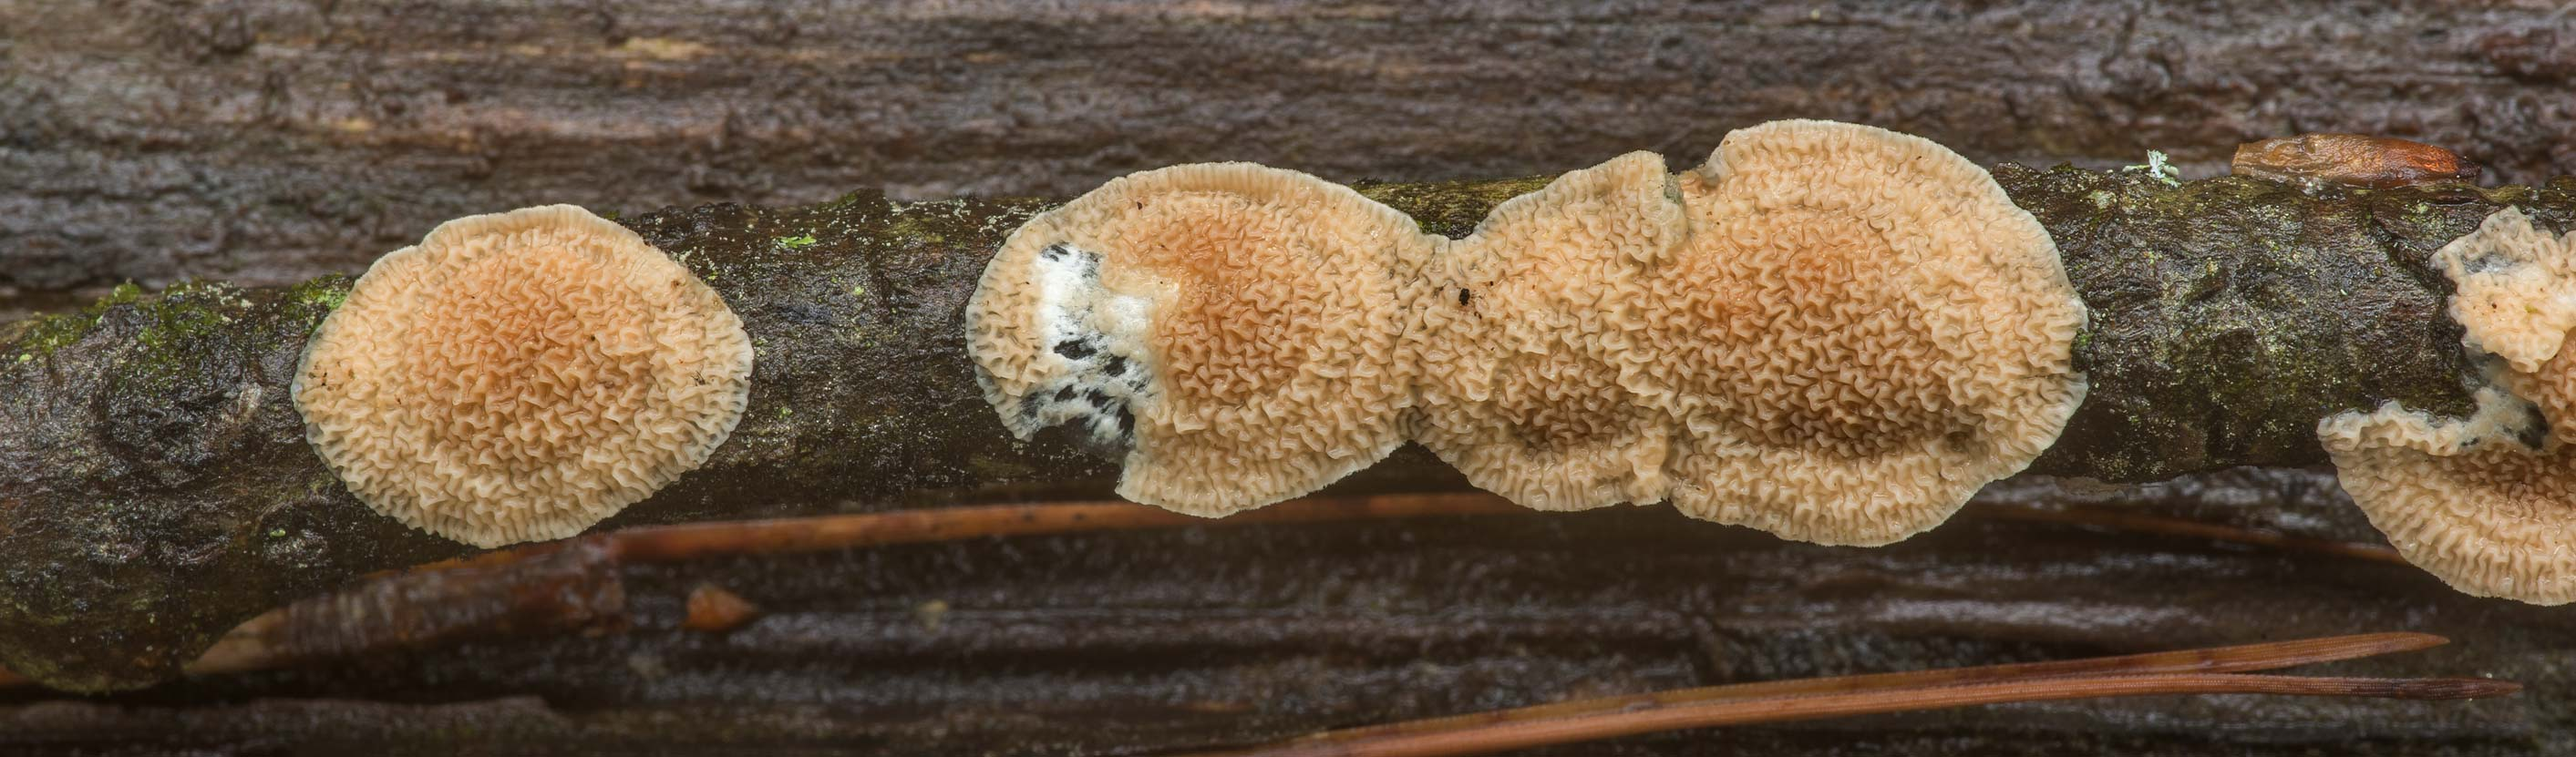 Leucogyrophana crust fungus on a thin twig on...National Forest. Richards, Texas